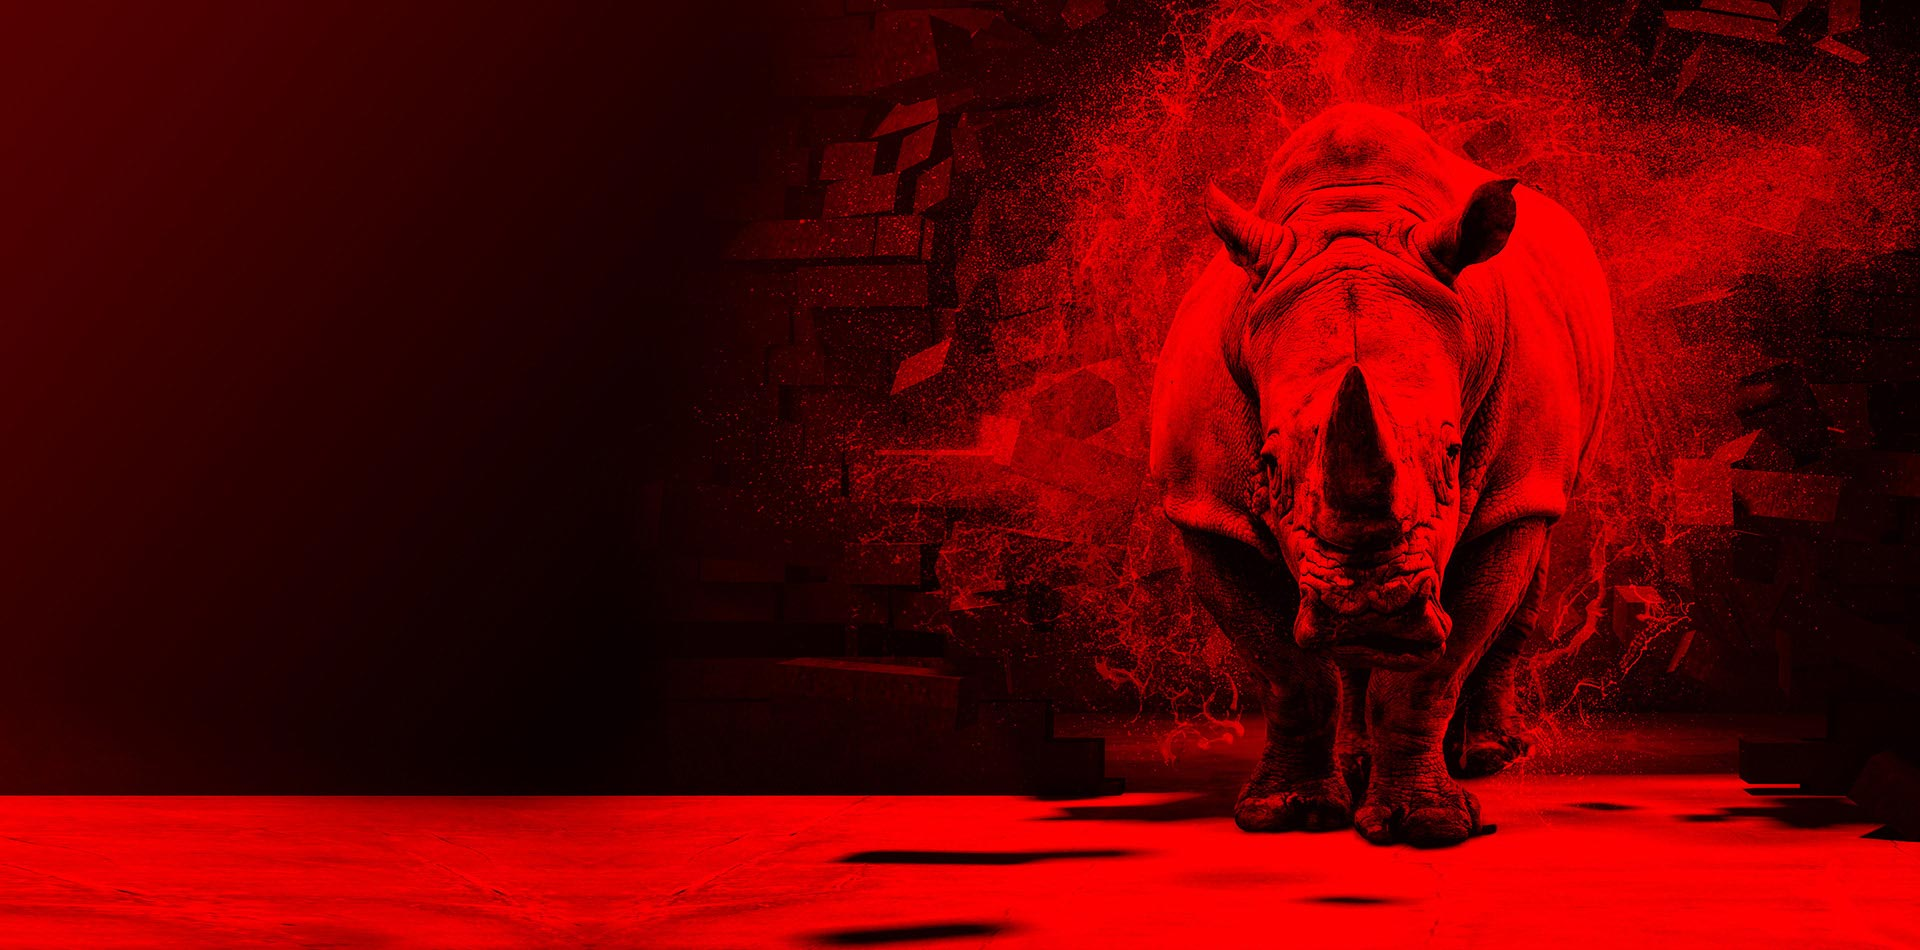 rhinoceros in red light breaking through a brick wall